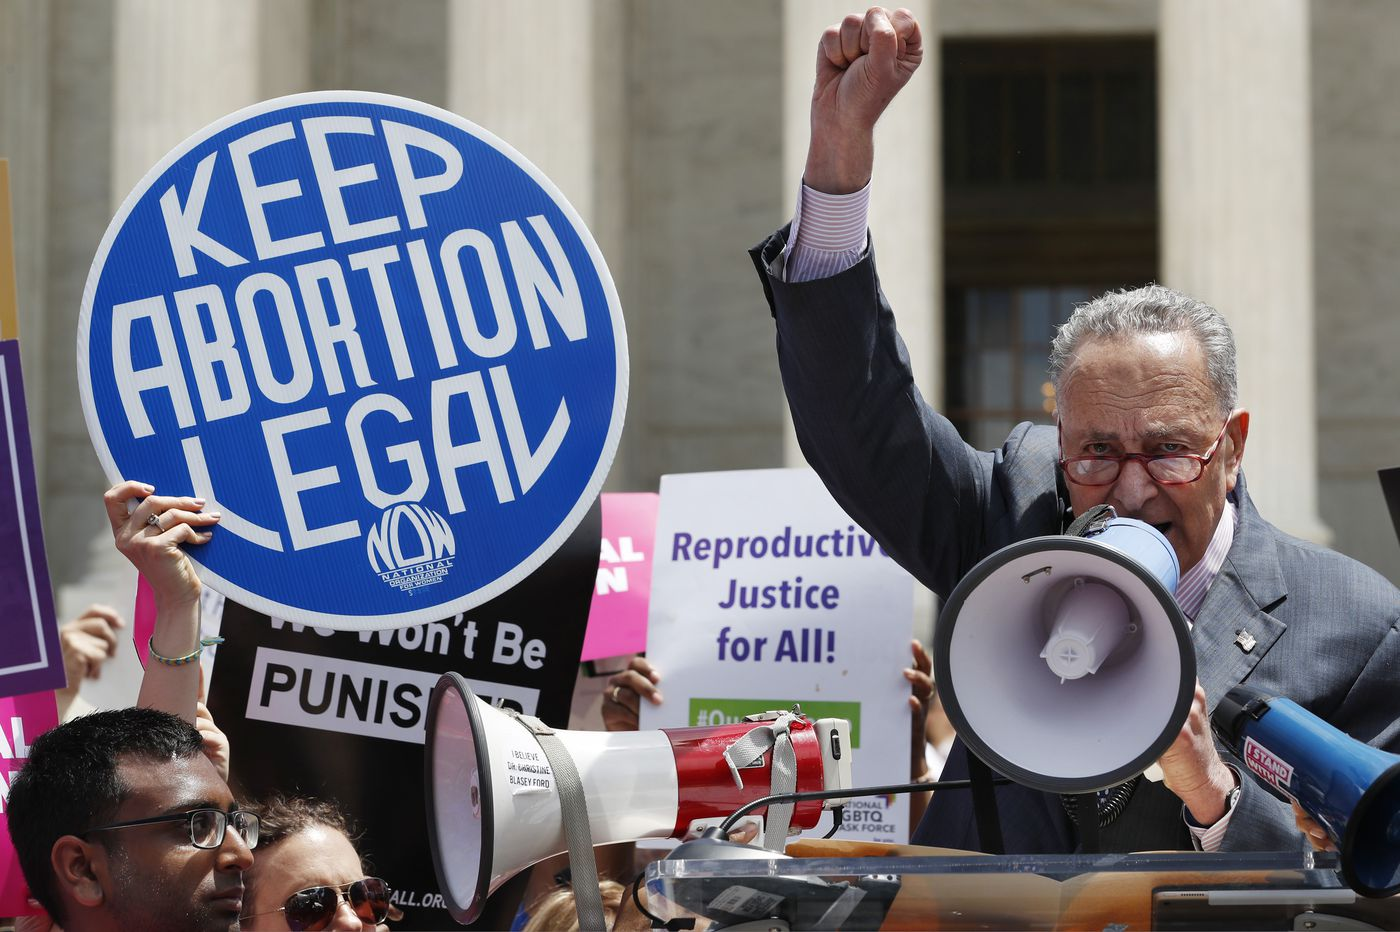 Did legalized abortion cut U.S. crime rates? Decades-old debate gets a reboot.